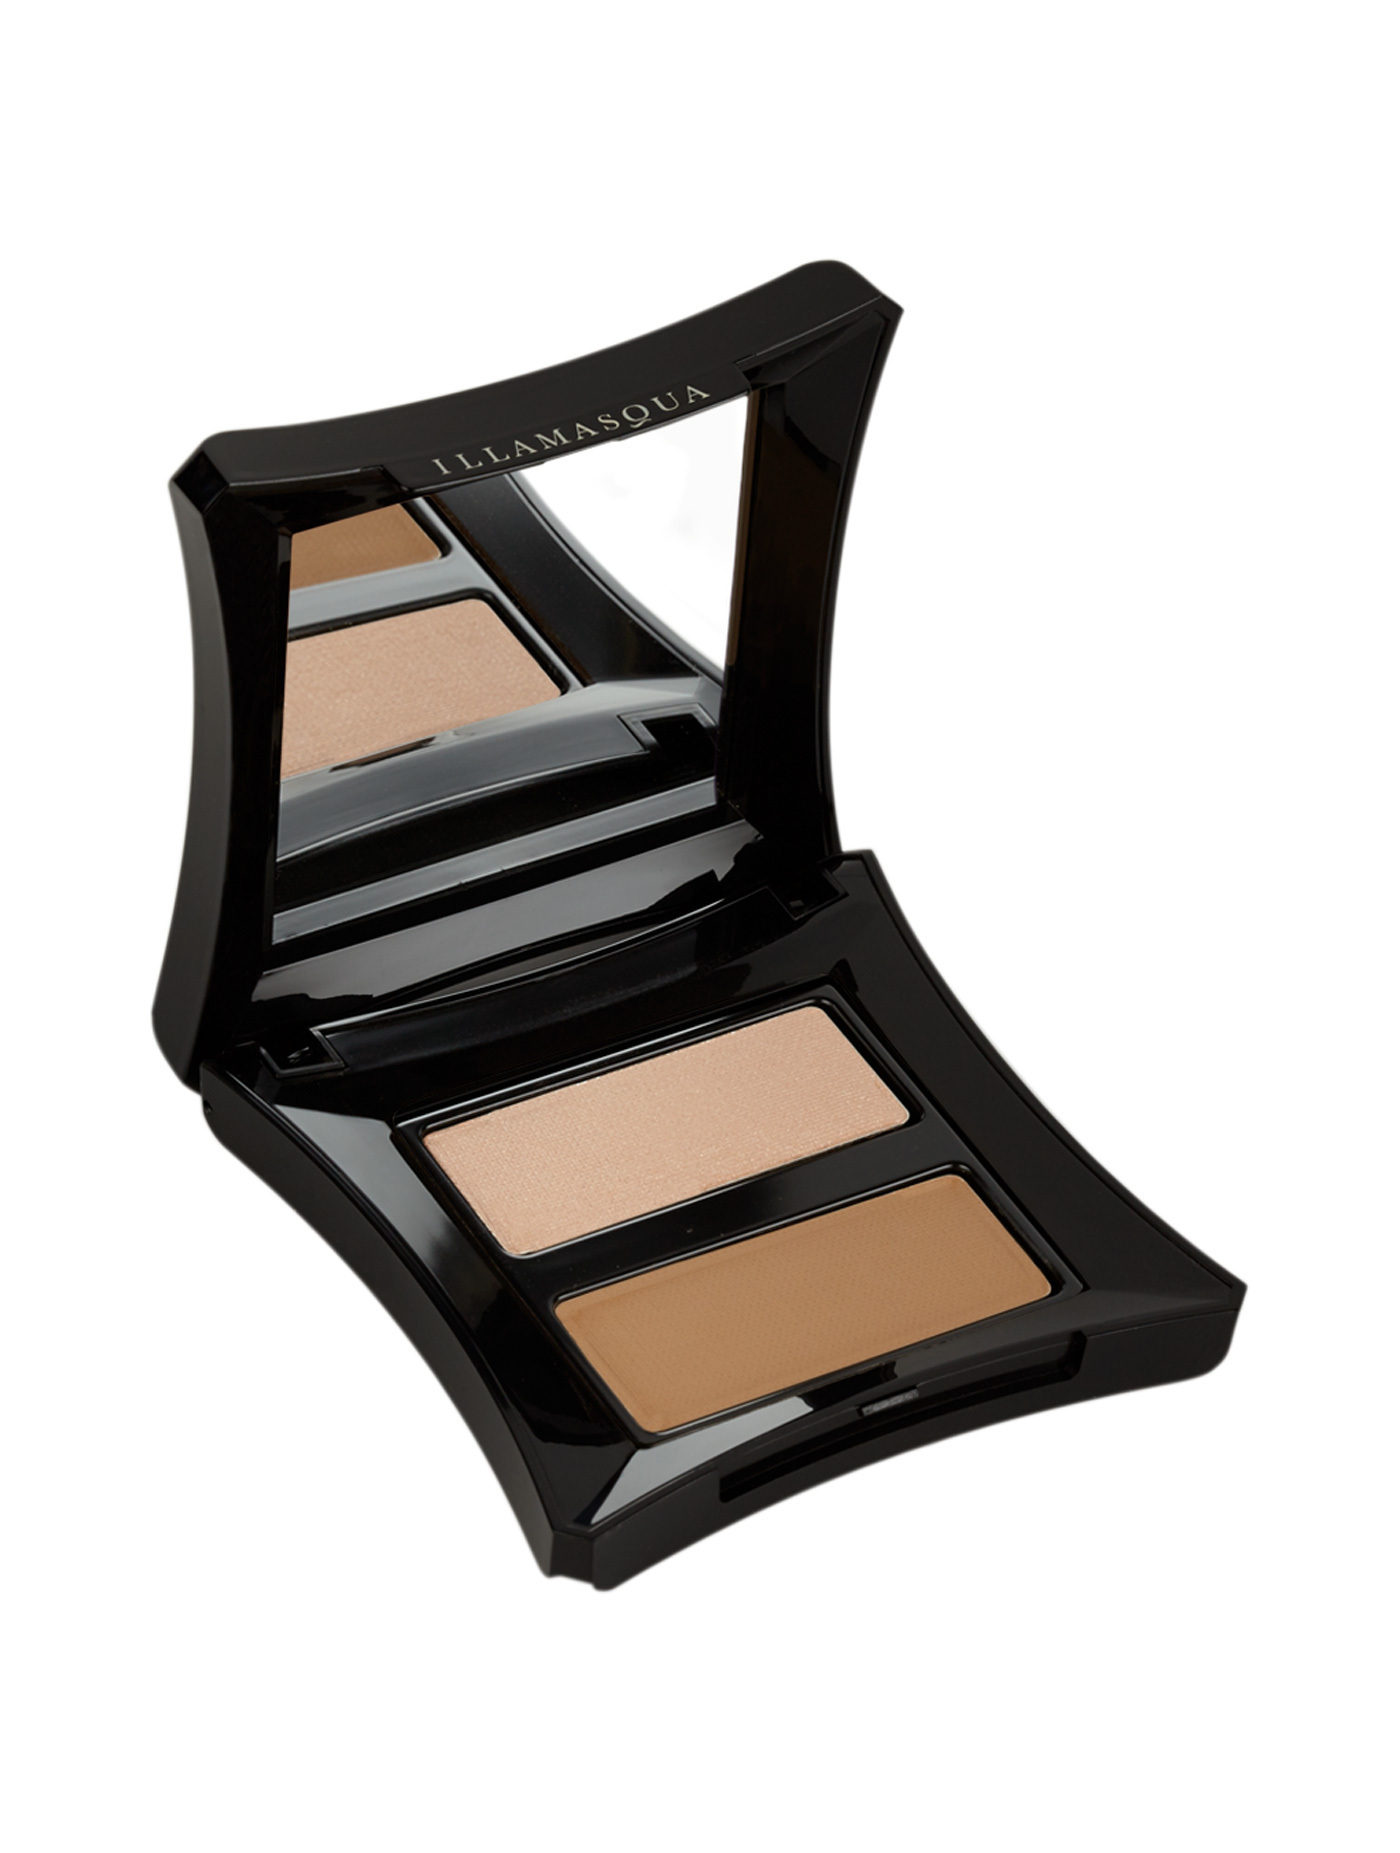 UK発 ILLAMASQUA Face Highlighter Scuplting Powder Duo